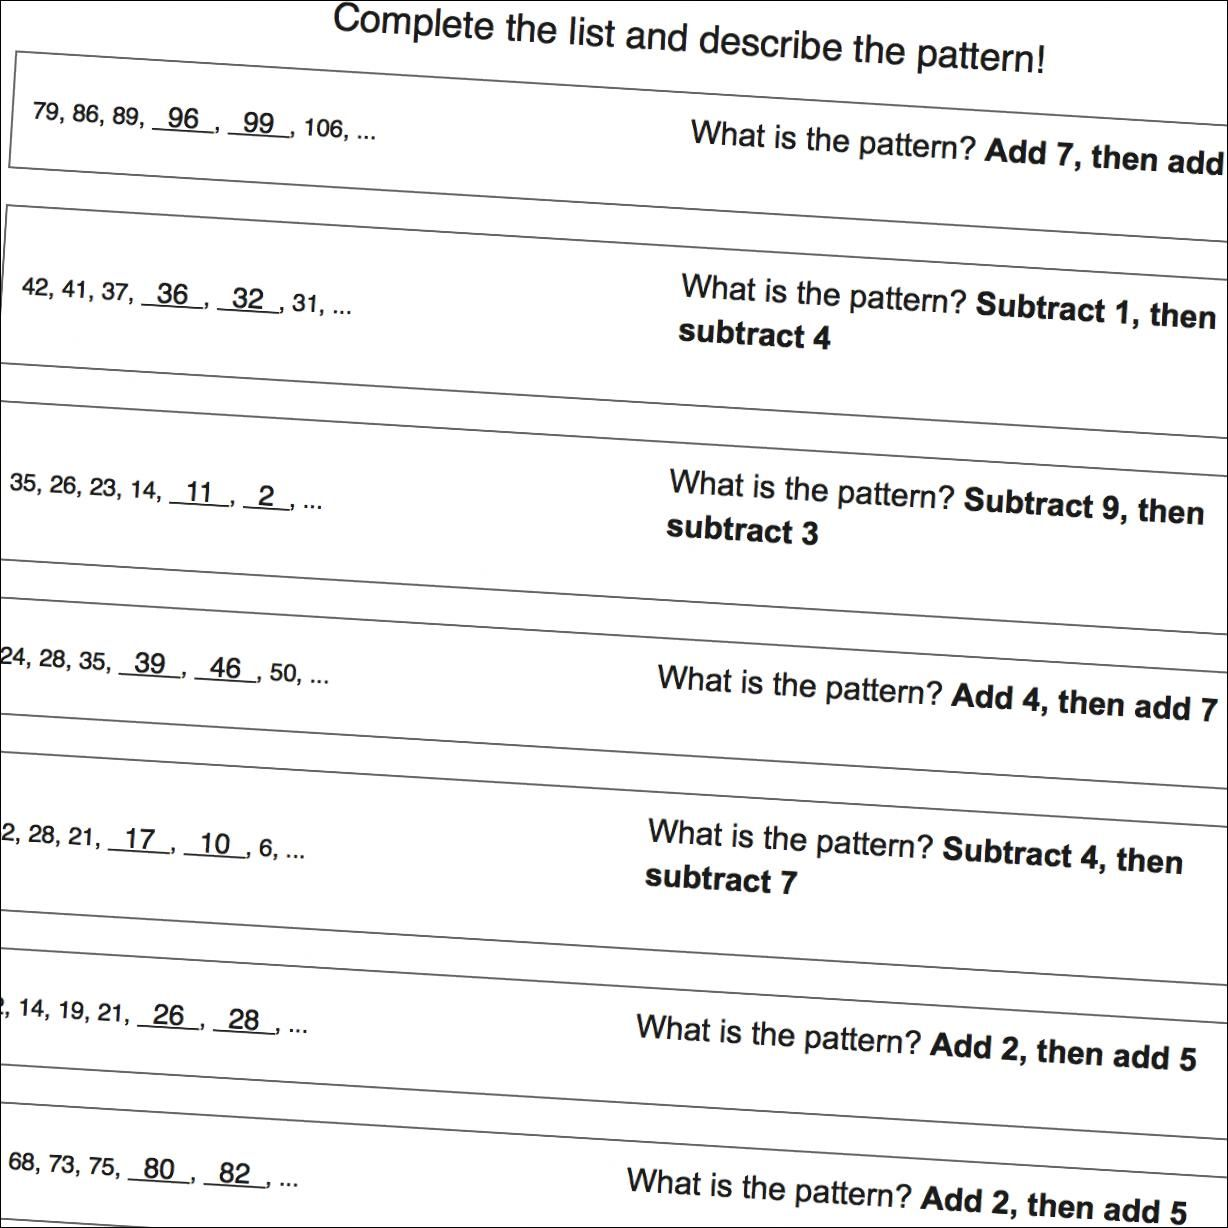 Math Worksheets Addition And Subtraction Patterns Number Patterns Worksheets Pattern Worksheet Math Worksheets [ 1228 x 1228 Pixel ]